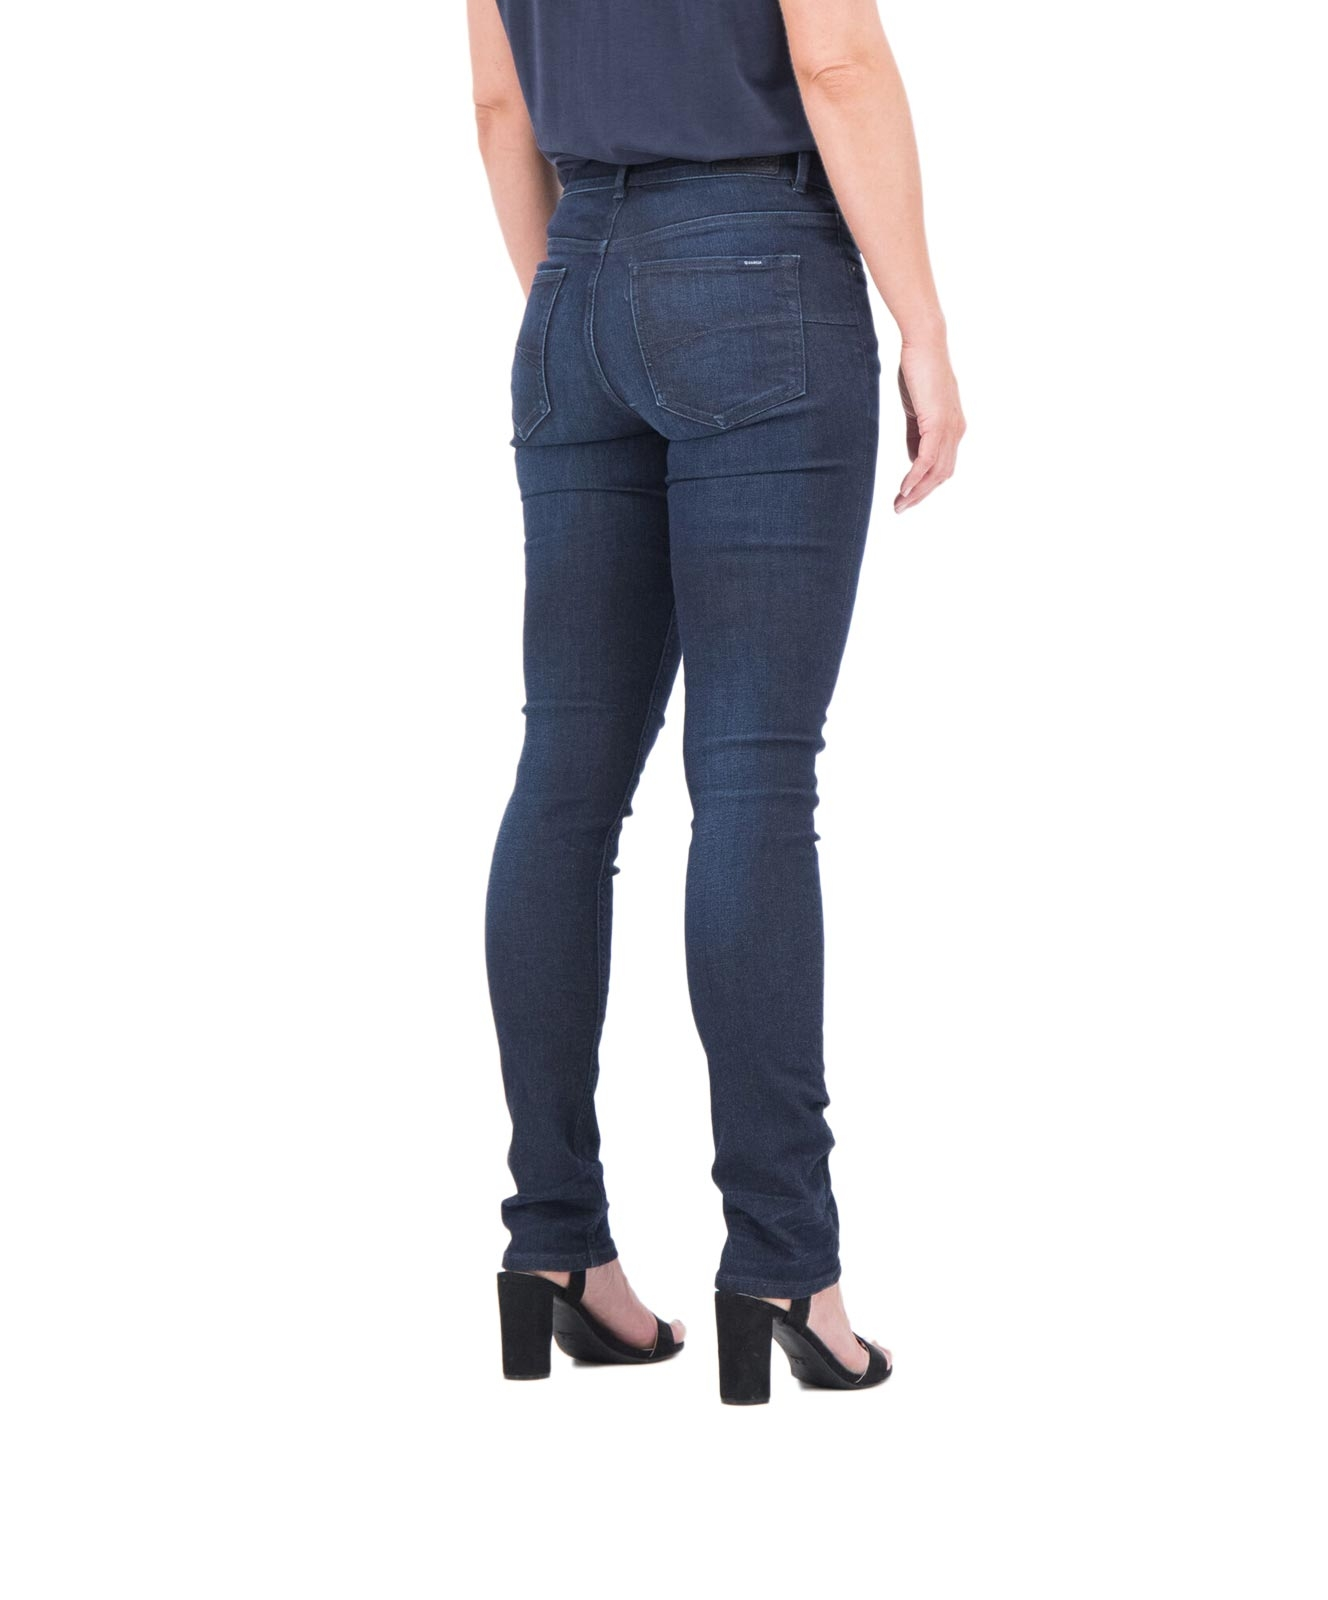 Hosen - Garcia Damen Jeans Mom Caro in Vintage Used Optik  - Onlineshop Jeans Meile